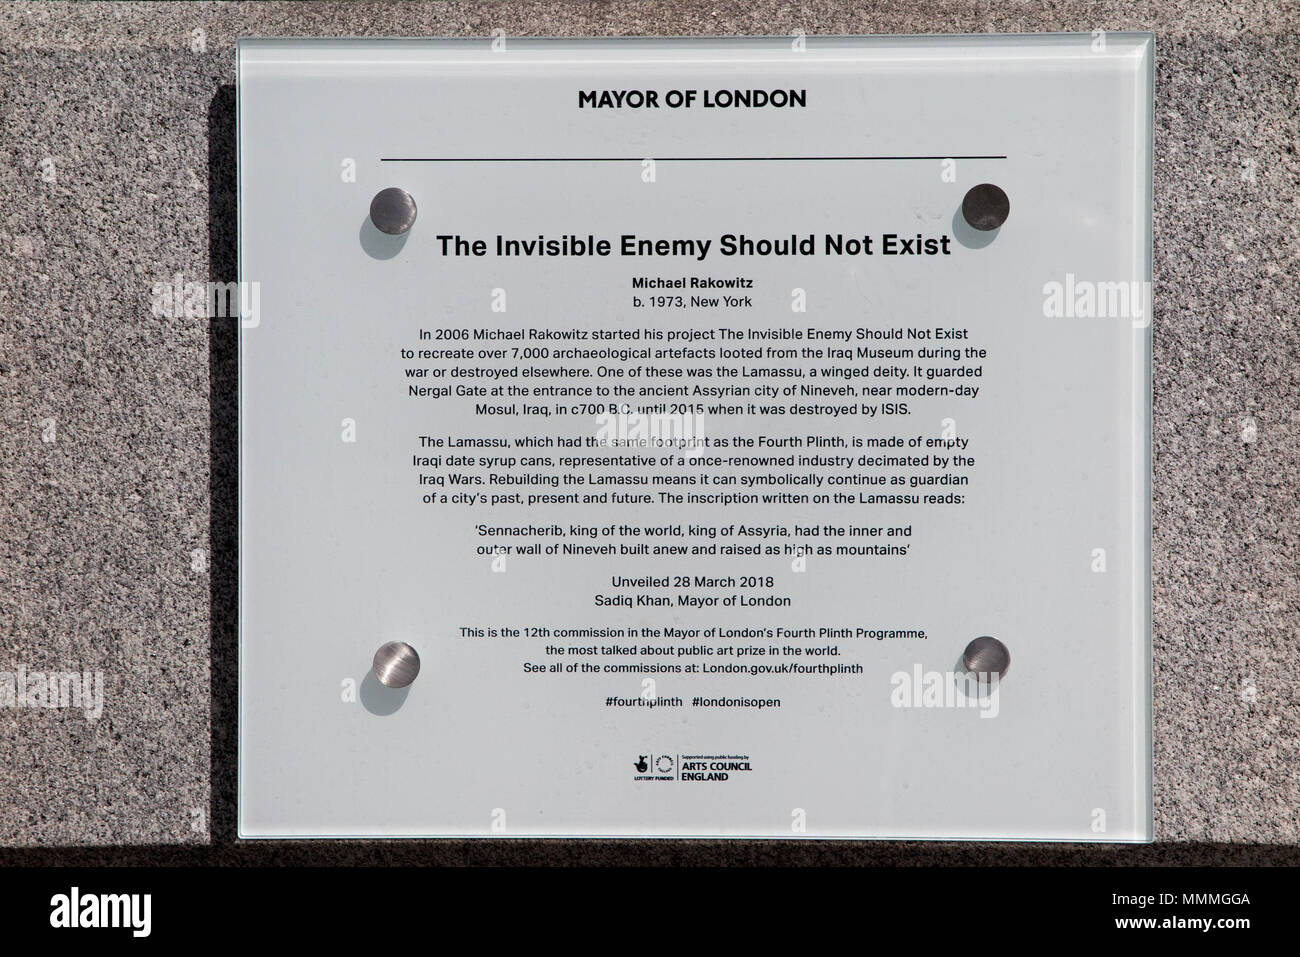 Michael Rakowitz's 'The Invisible Enemy Should Not Exist' - the ninth piece of artwork to grace the The Fourth plinth, Trafalgar Square, London, UK - Stock Image